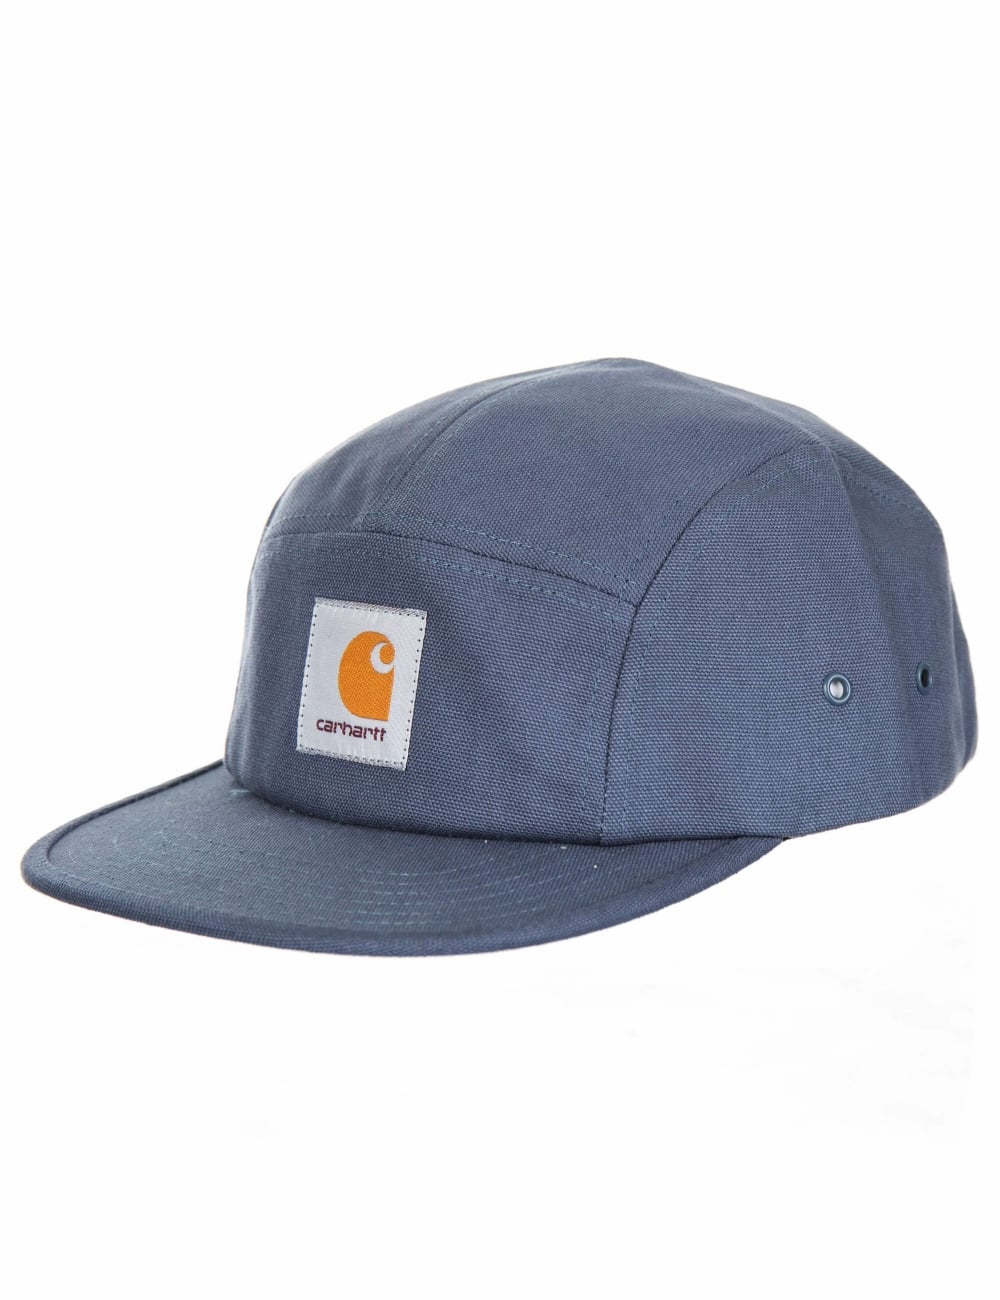 92c798abbed Carhartt WIP Backley Cap - Stone Blue - Accessories from Fat Buddha ...